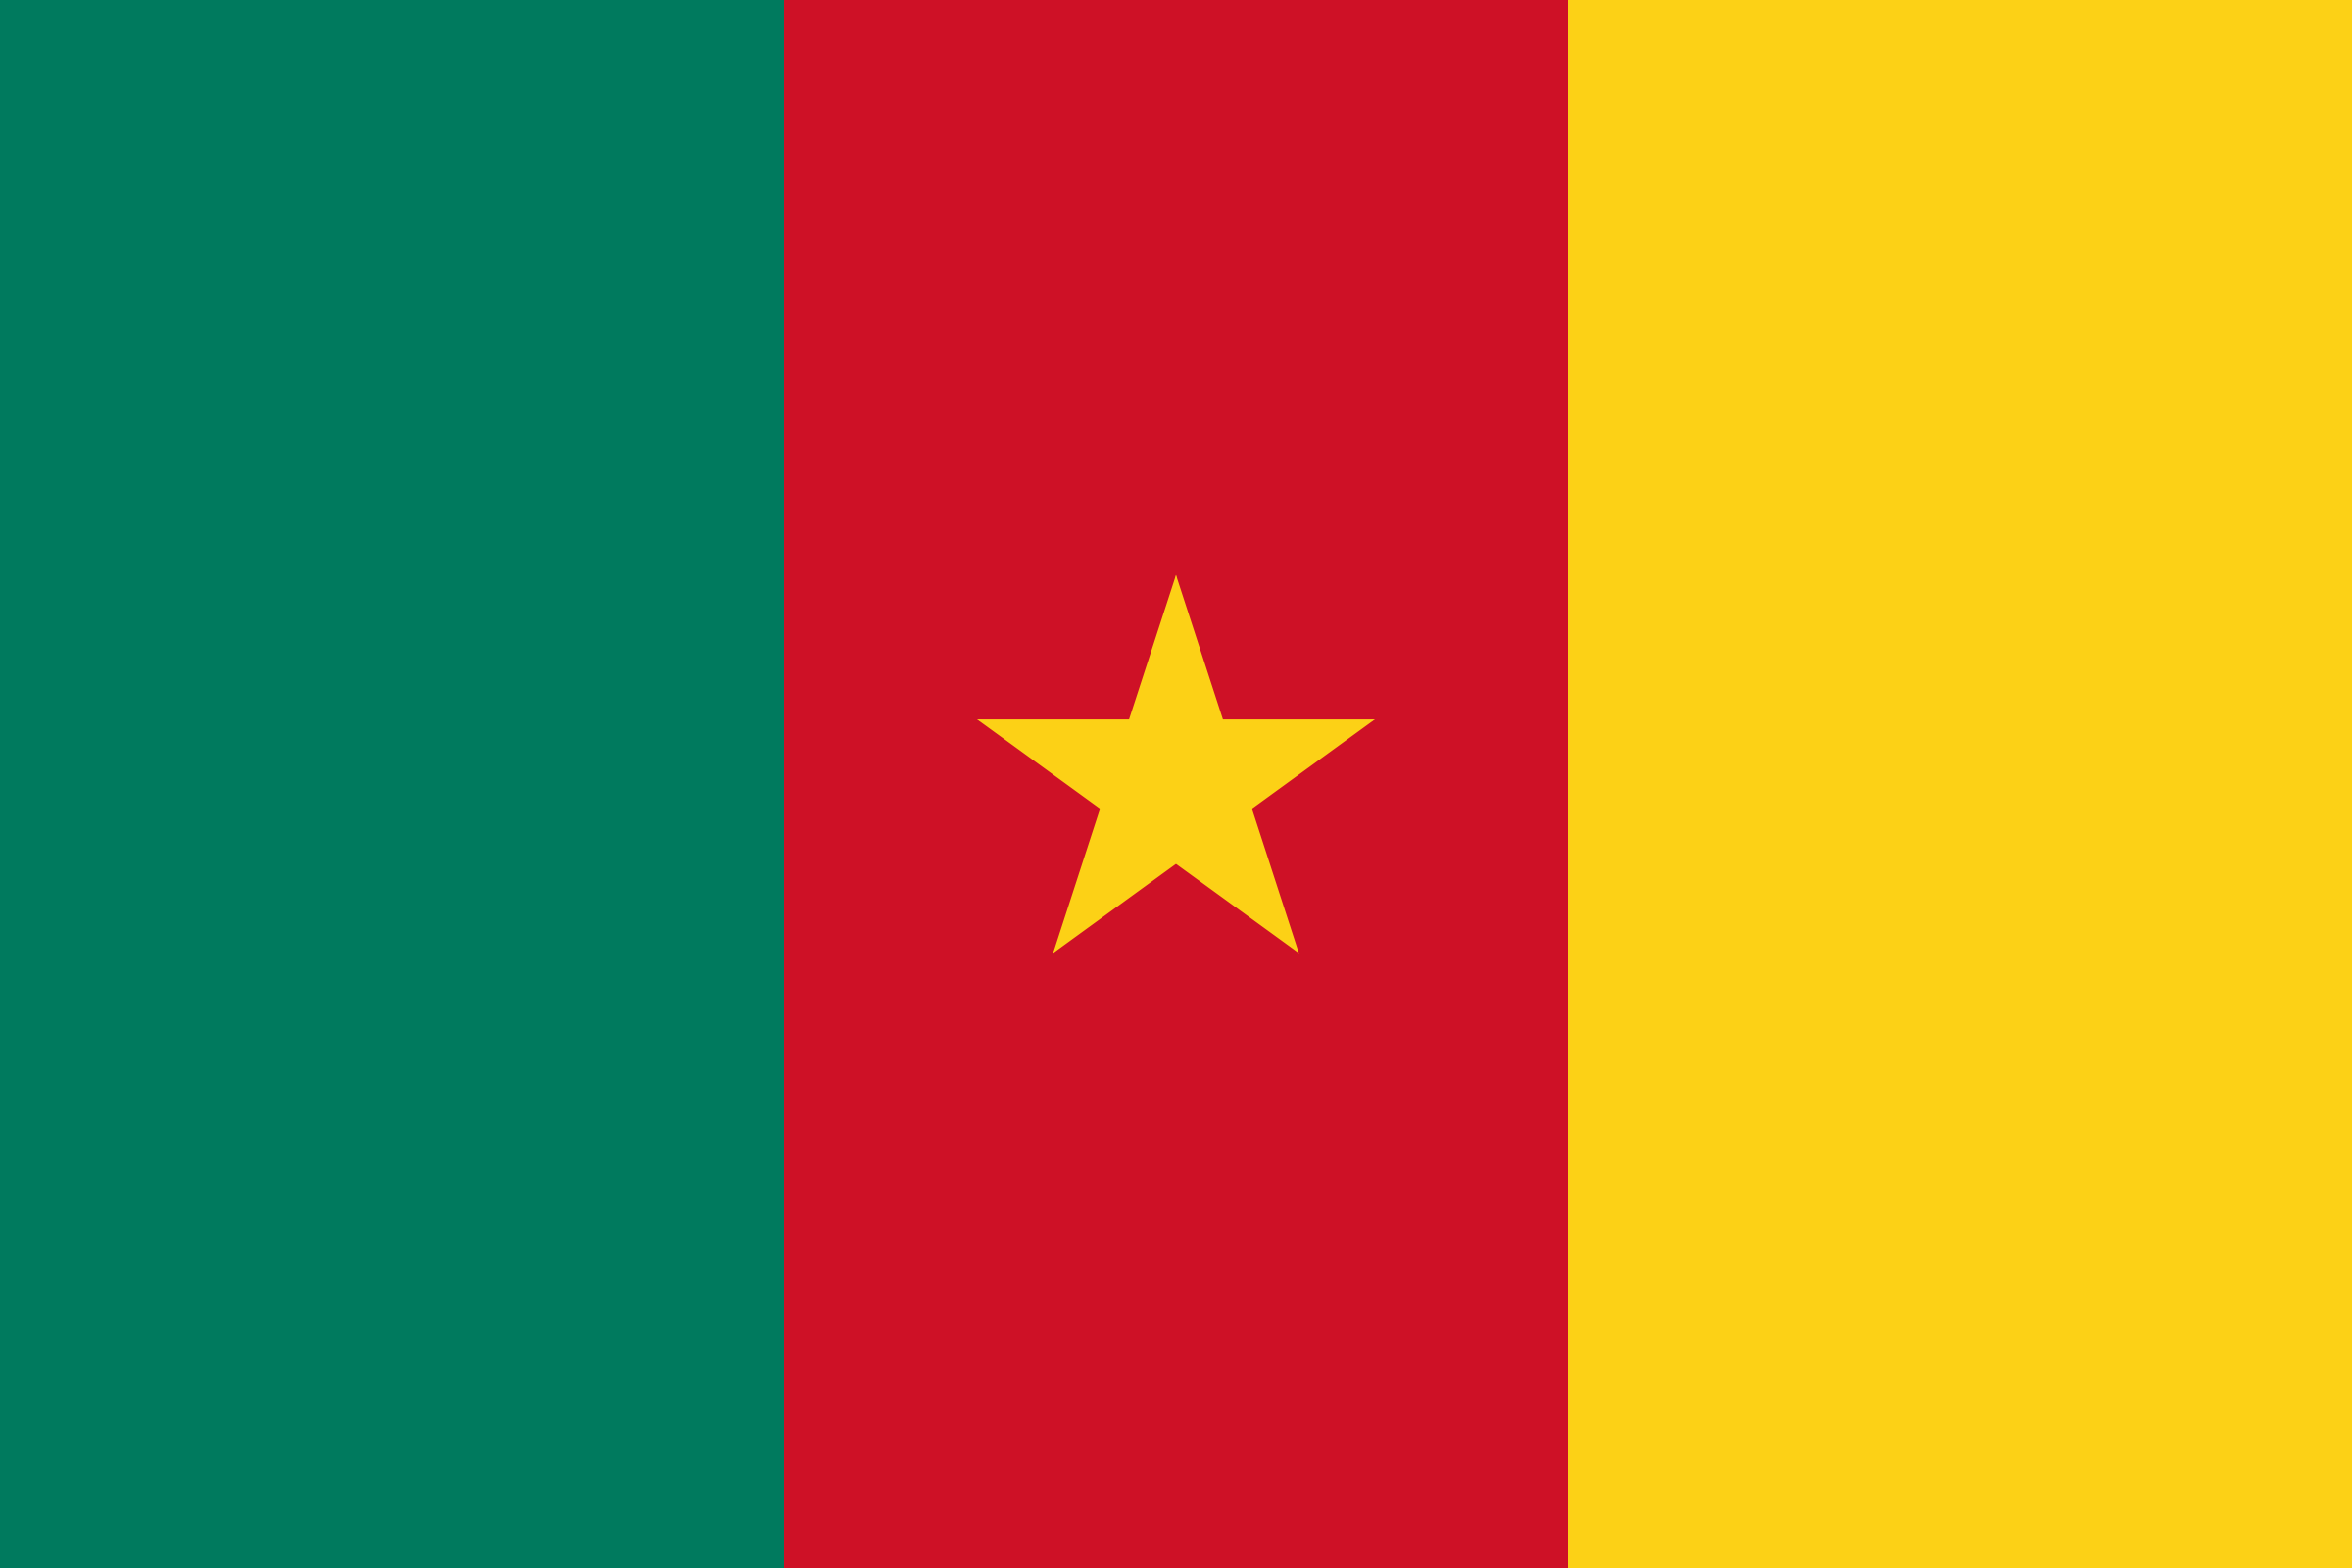 Flag of Cameroon by Rfc1394